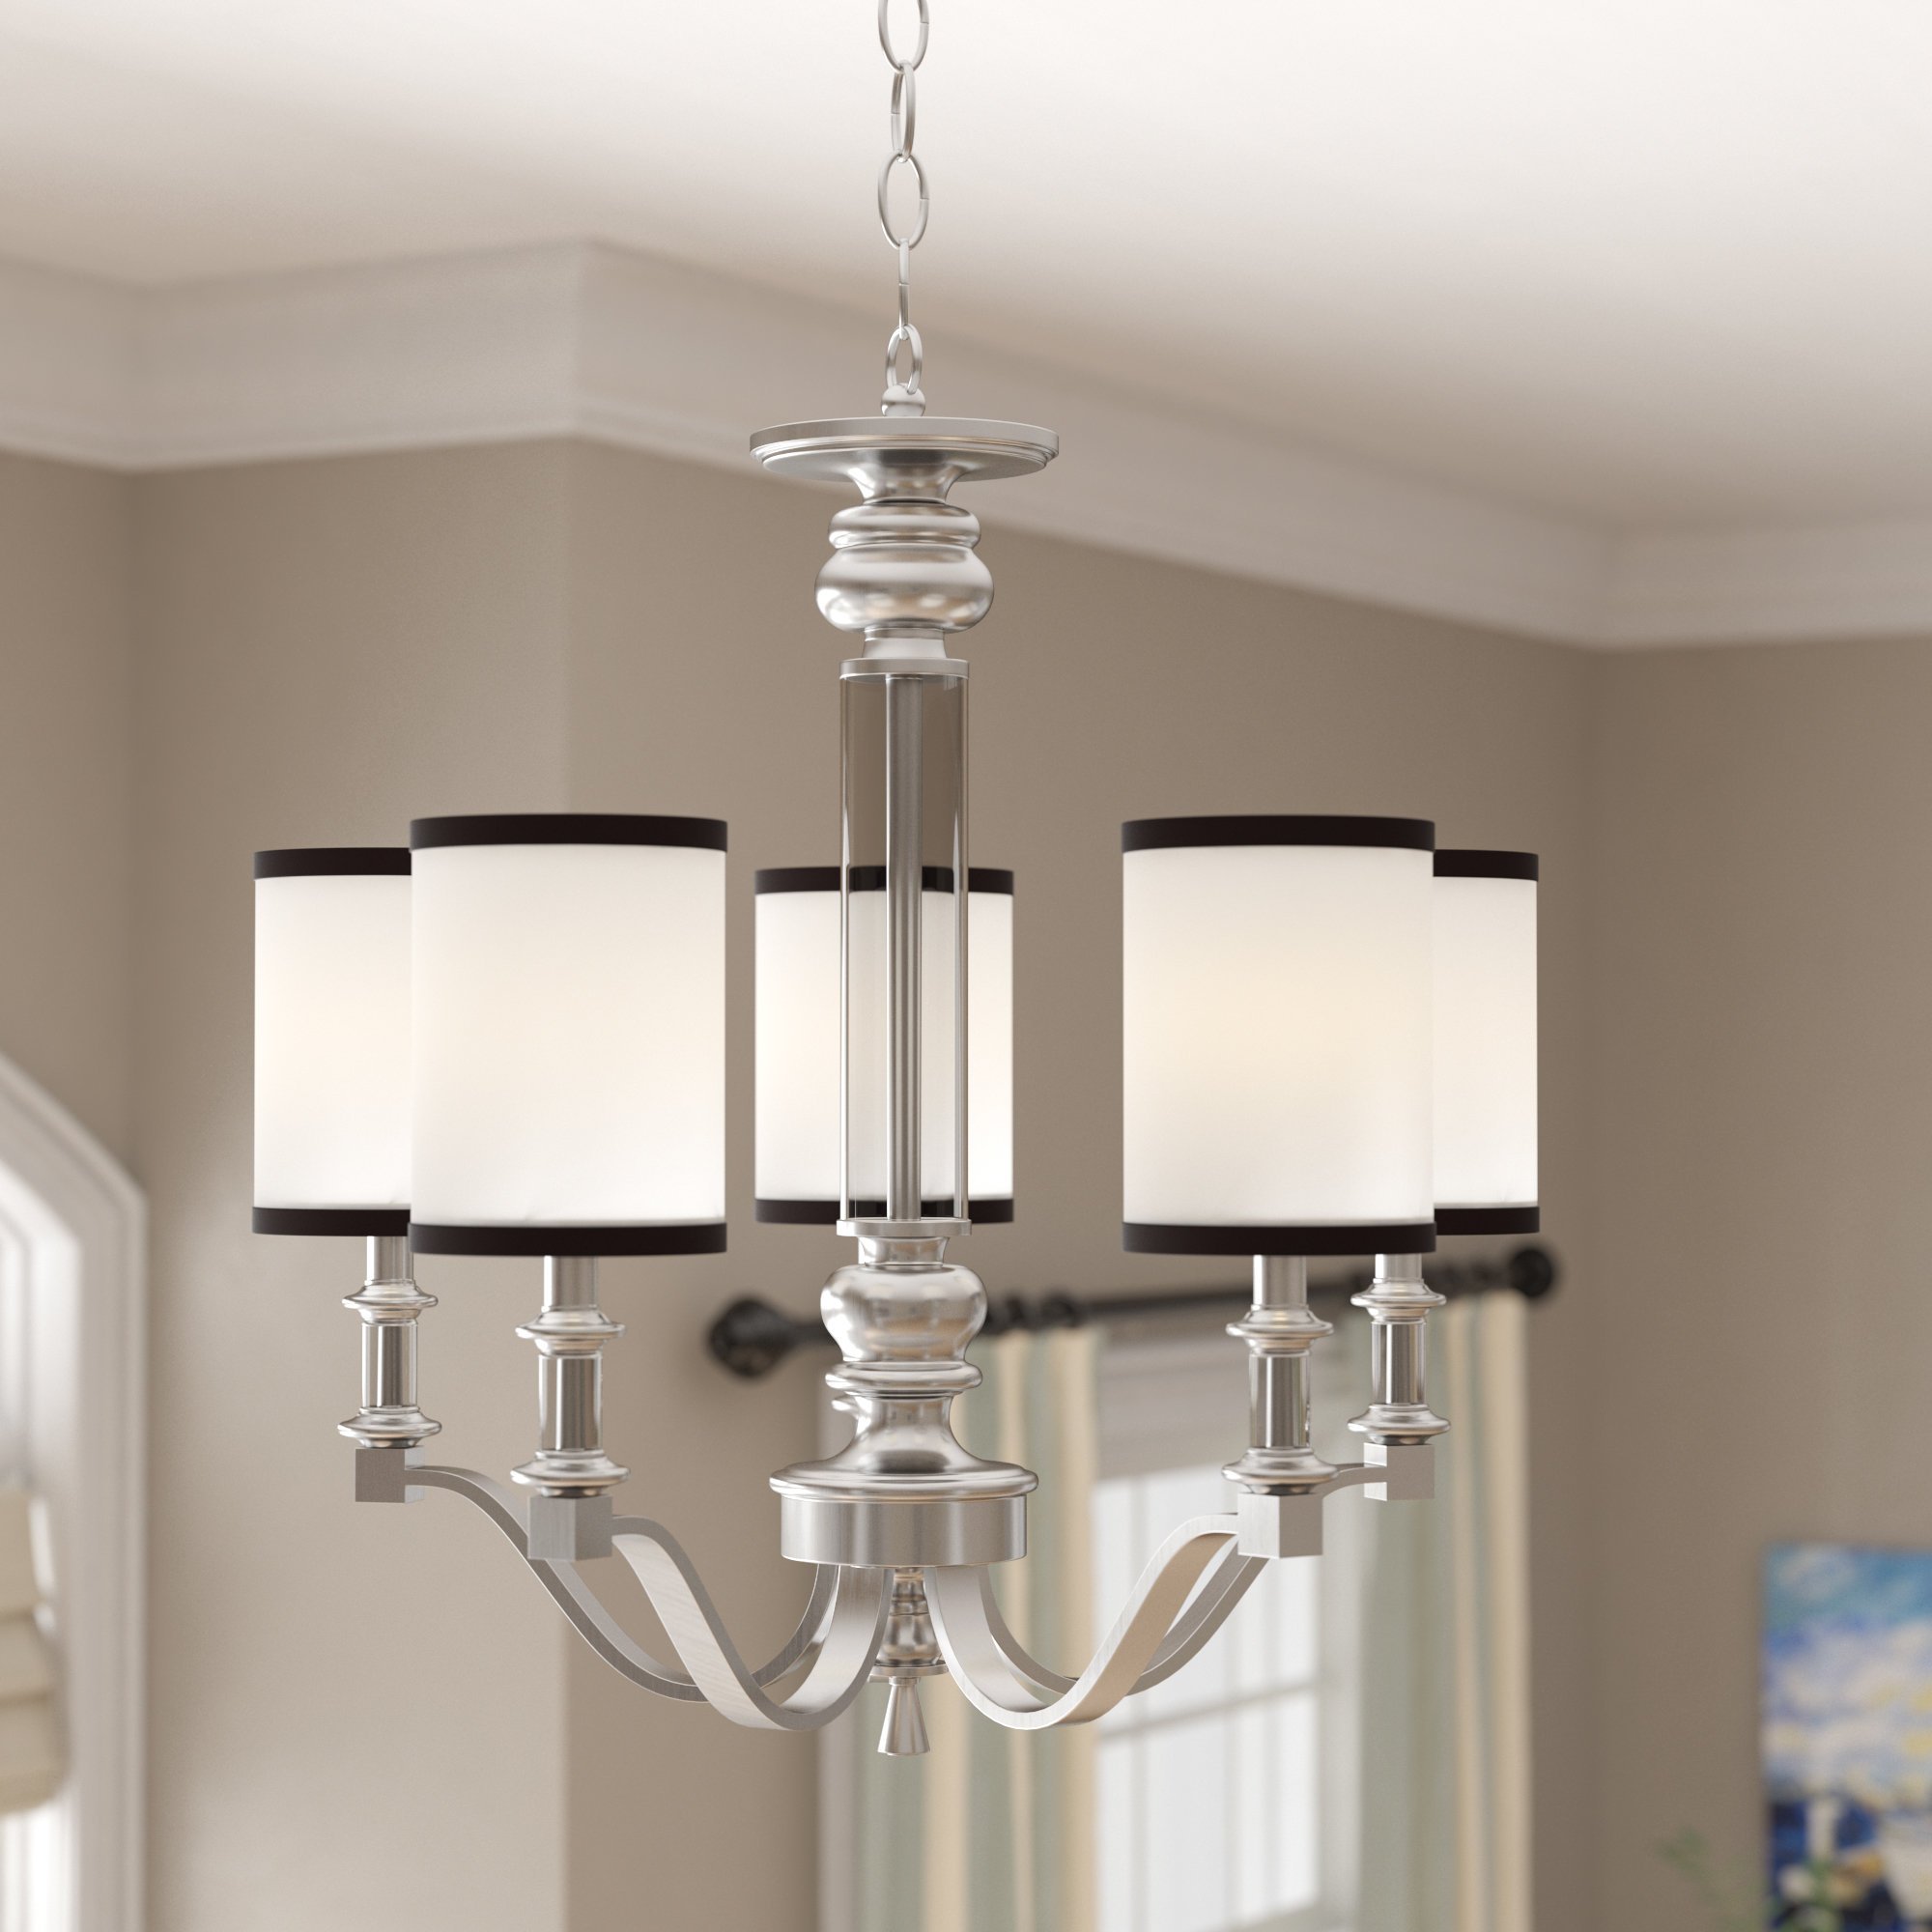 Pfeffer 5 Light Shaded Chandelier For Hayden 5 Light Shaded Chandeliers (View 6 of 30)